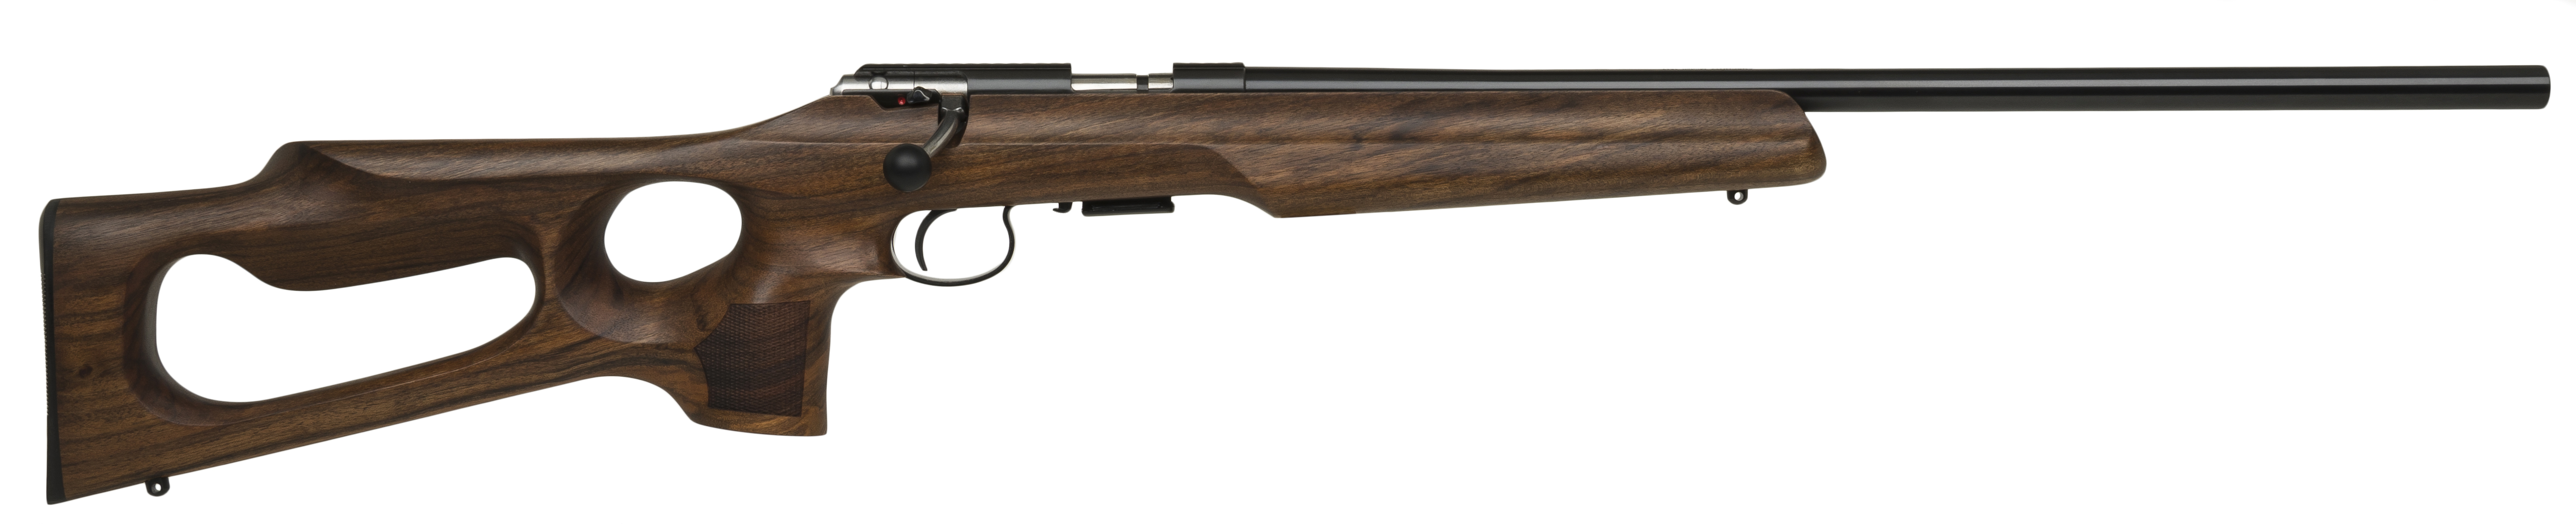 Rifle stock with thumb holes